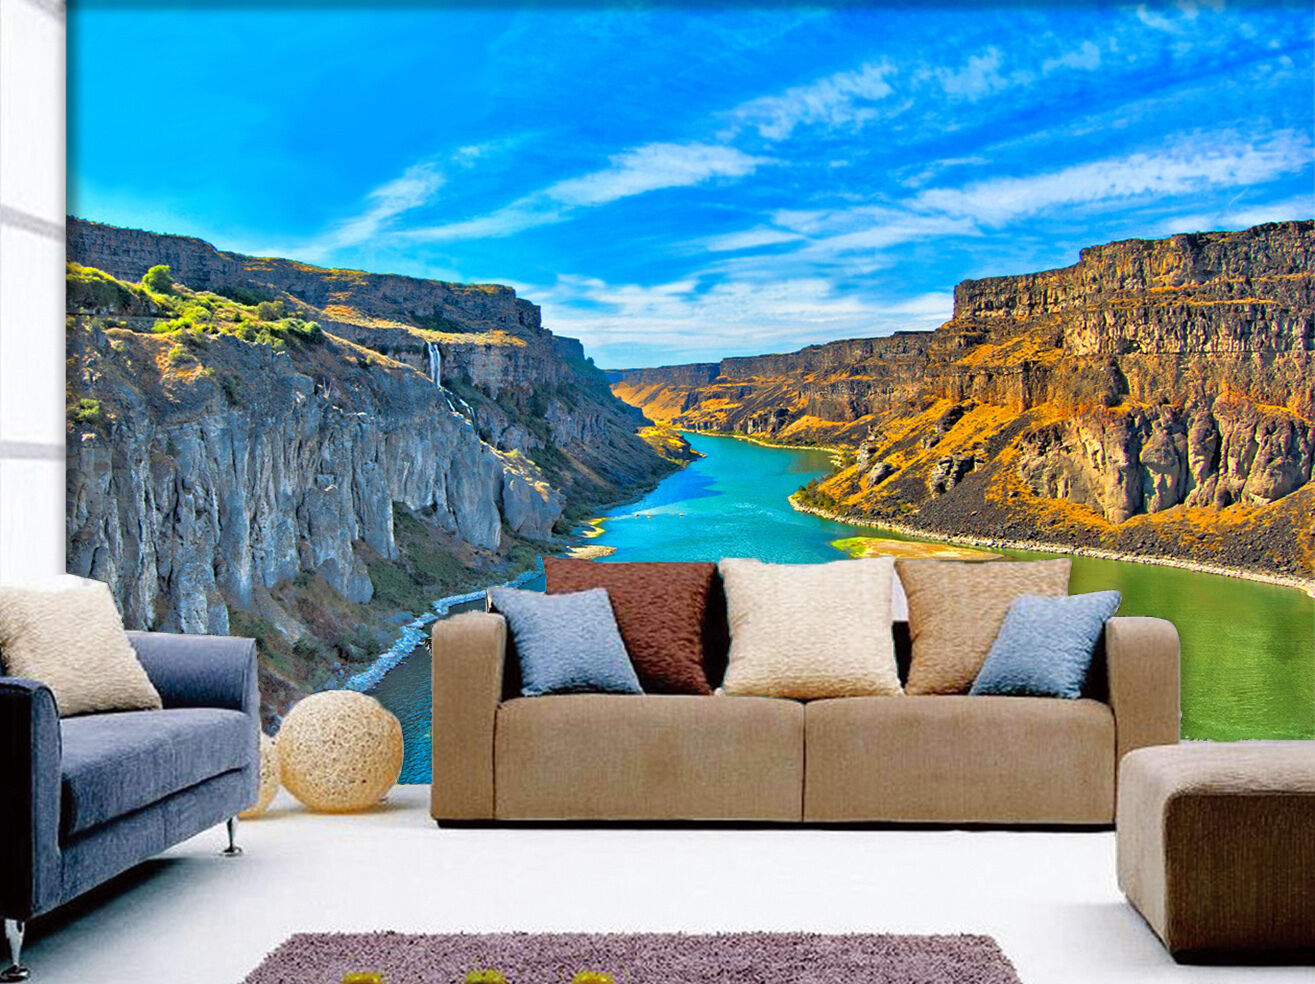 3D River Scenery 809 Wall Paper Wall Print Decal Wall Deco Indoor AJ Wall Paper